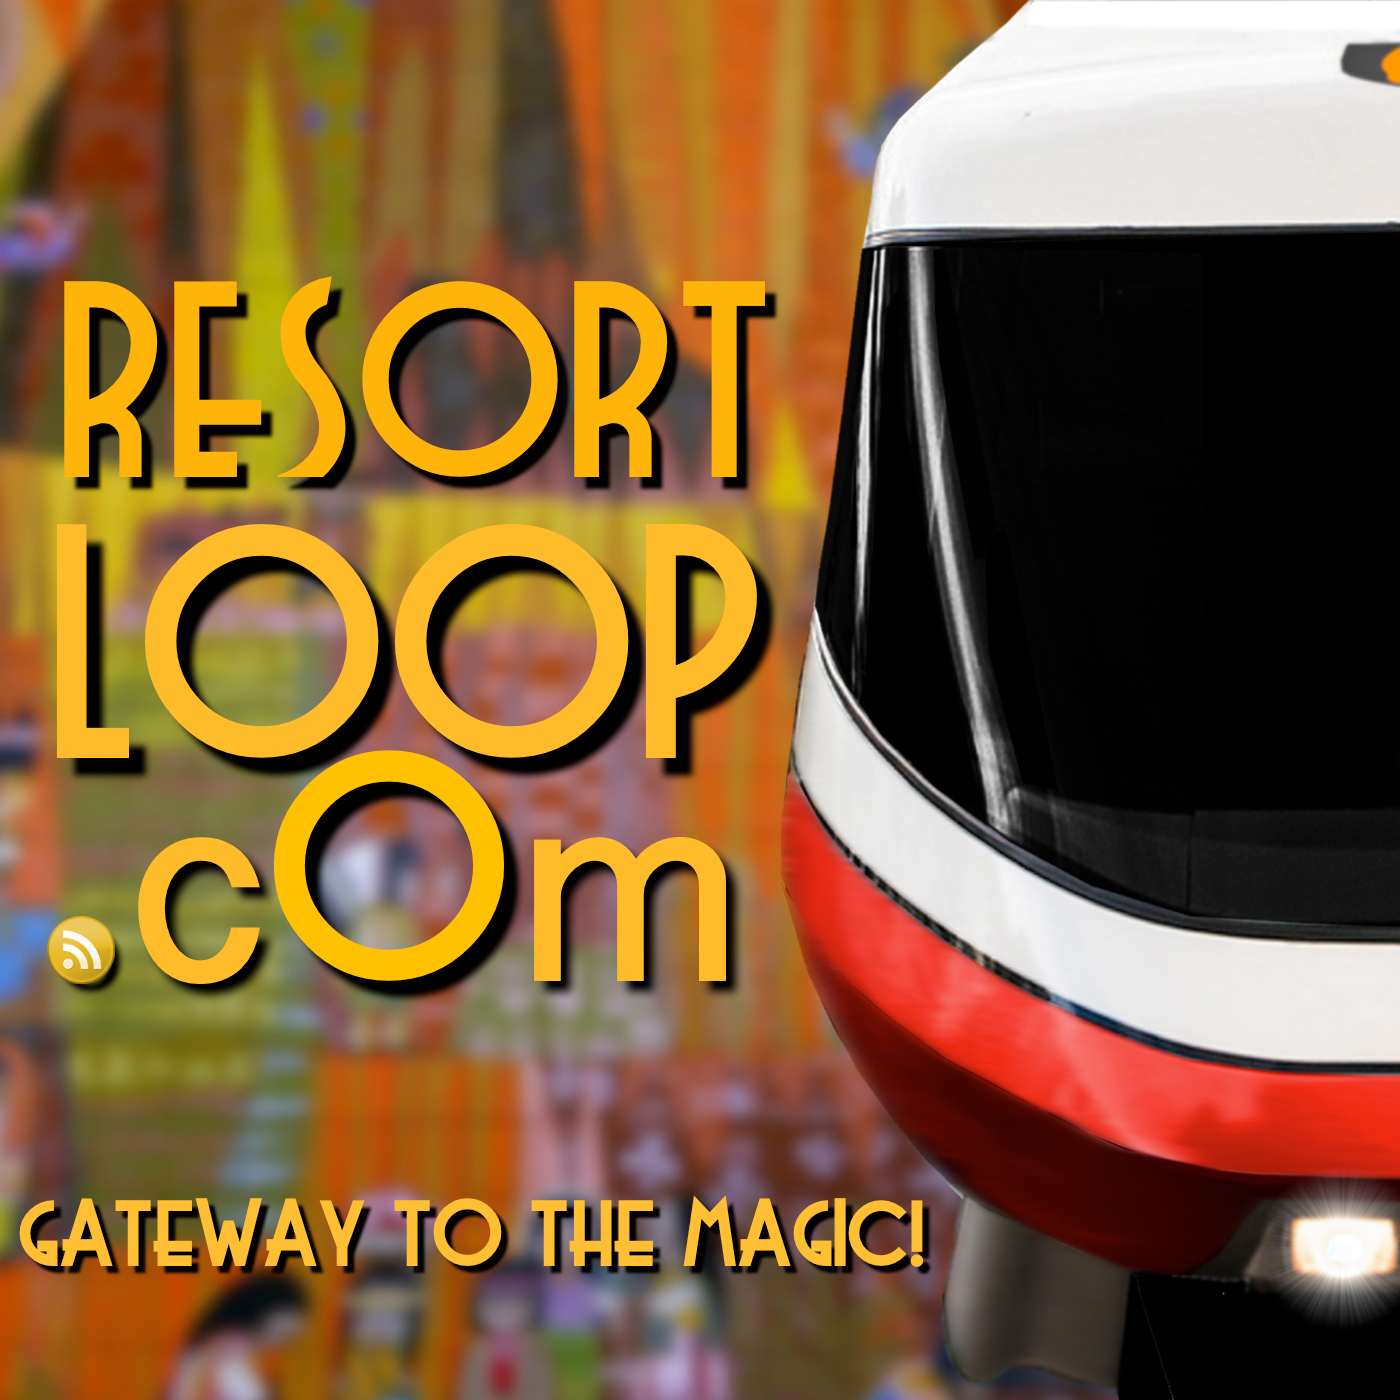 ResortLoop.com Episode 386 – Why No Show?!